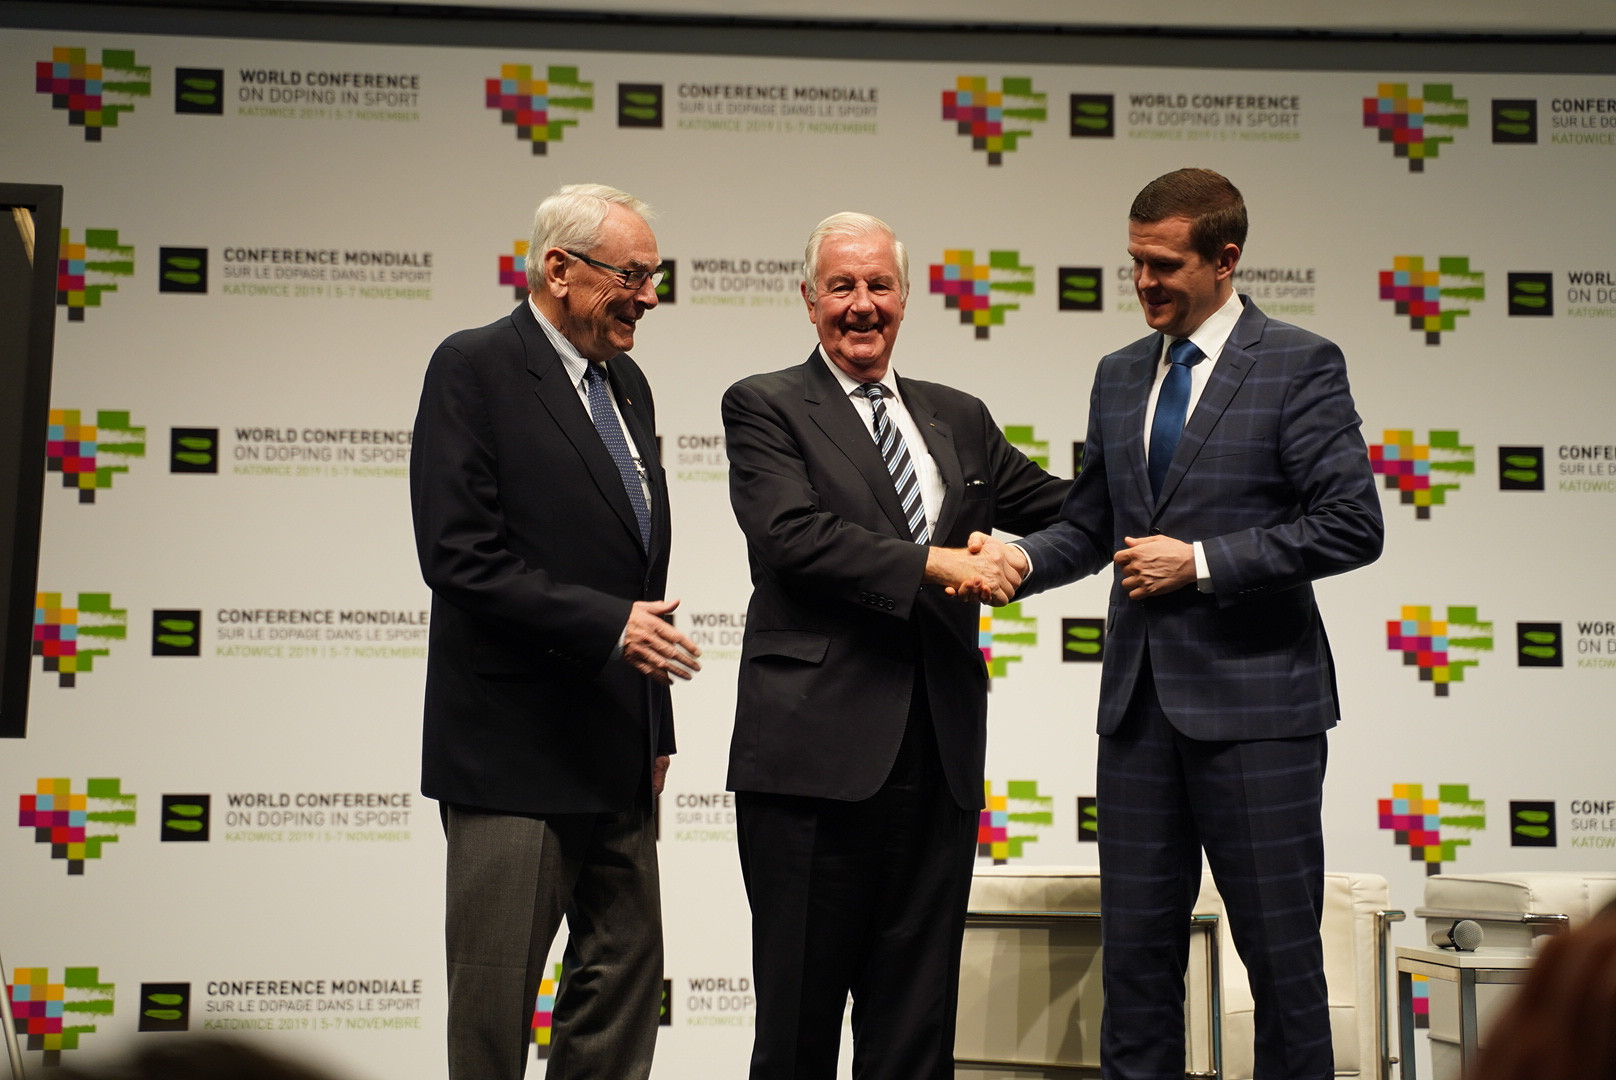 WADA's founding President Richard Pound, left, was full of praise for Sir Craig Reedie, centre, as he prepared to hand over to Witold Bańka, right, as head of the organisation ©WADA